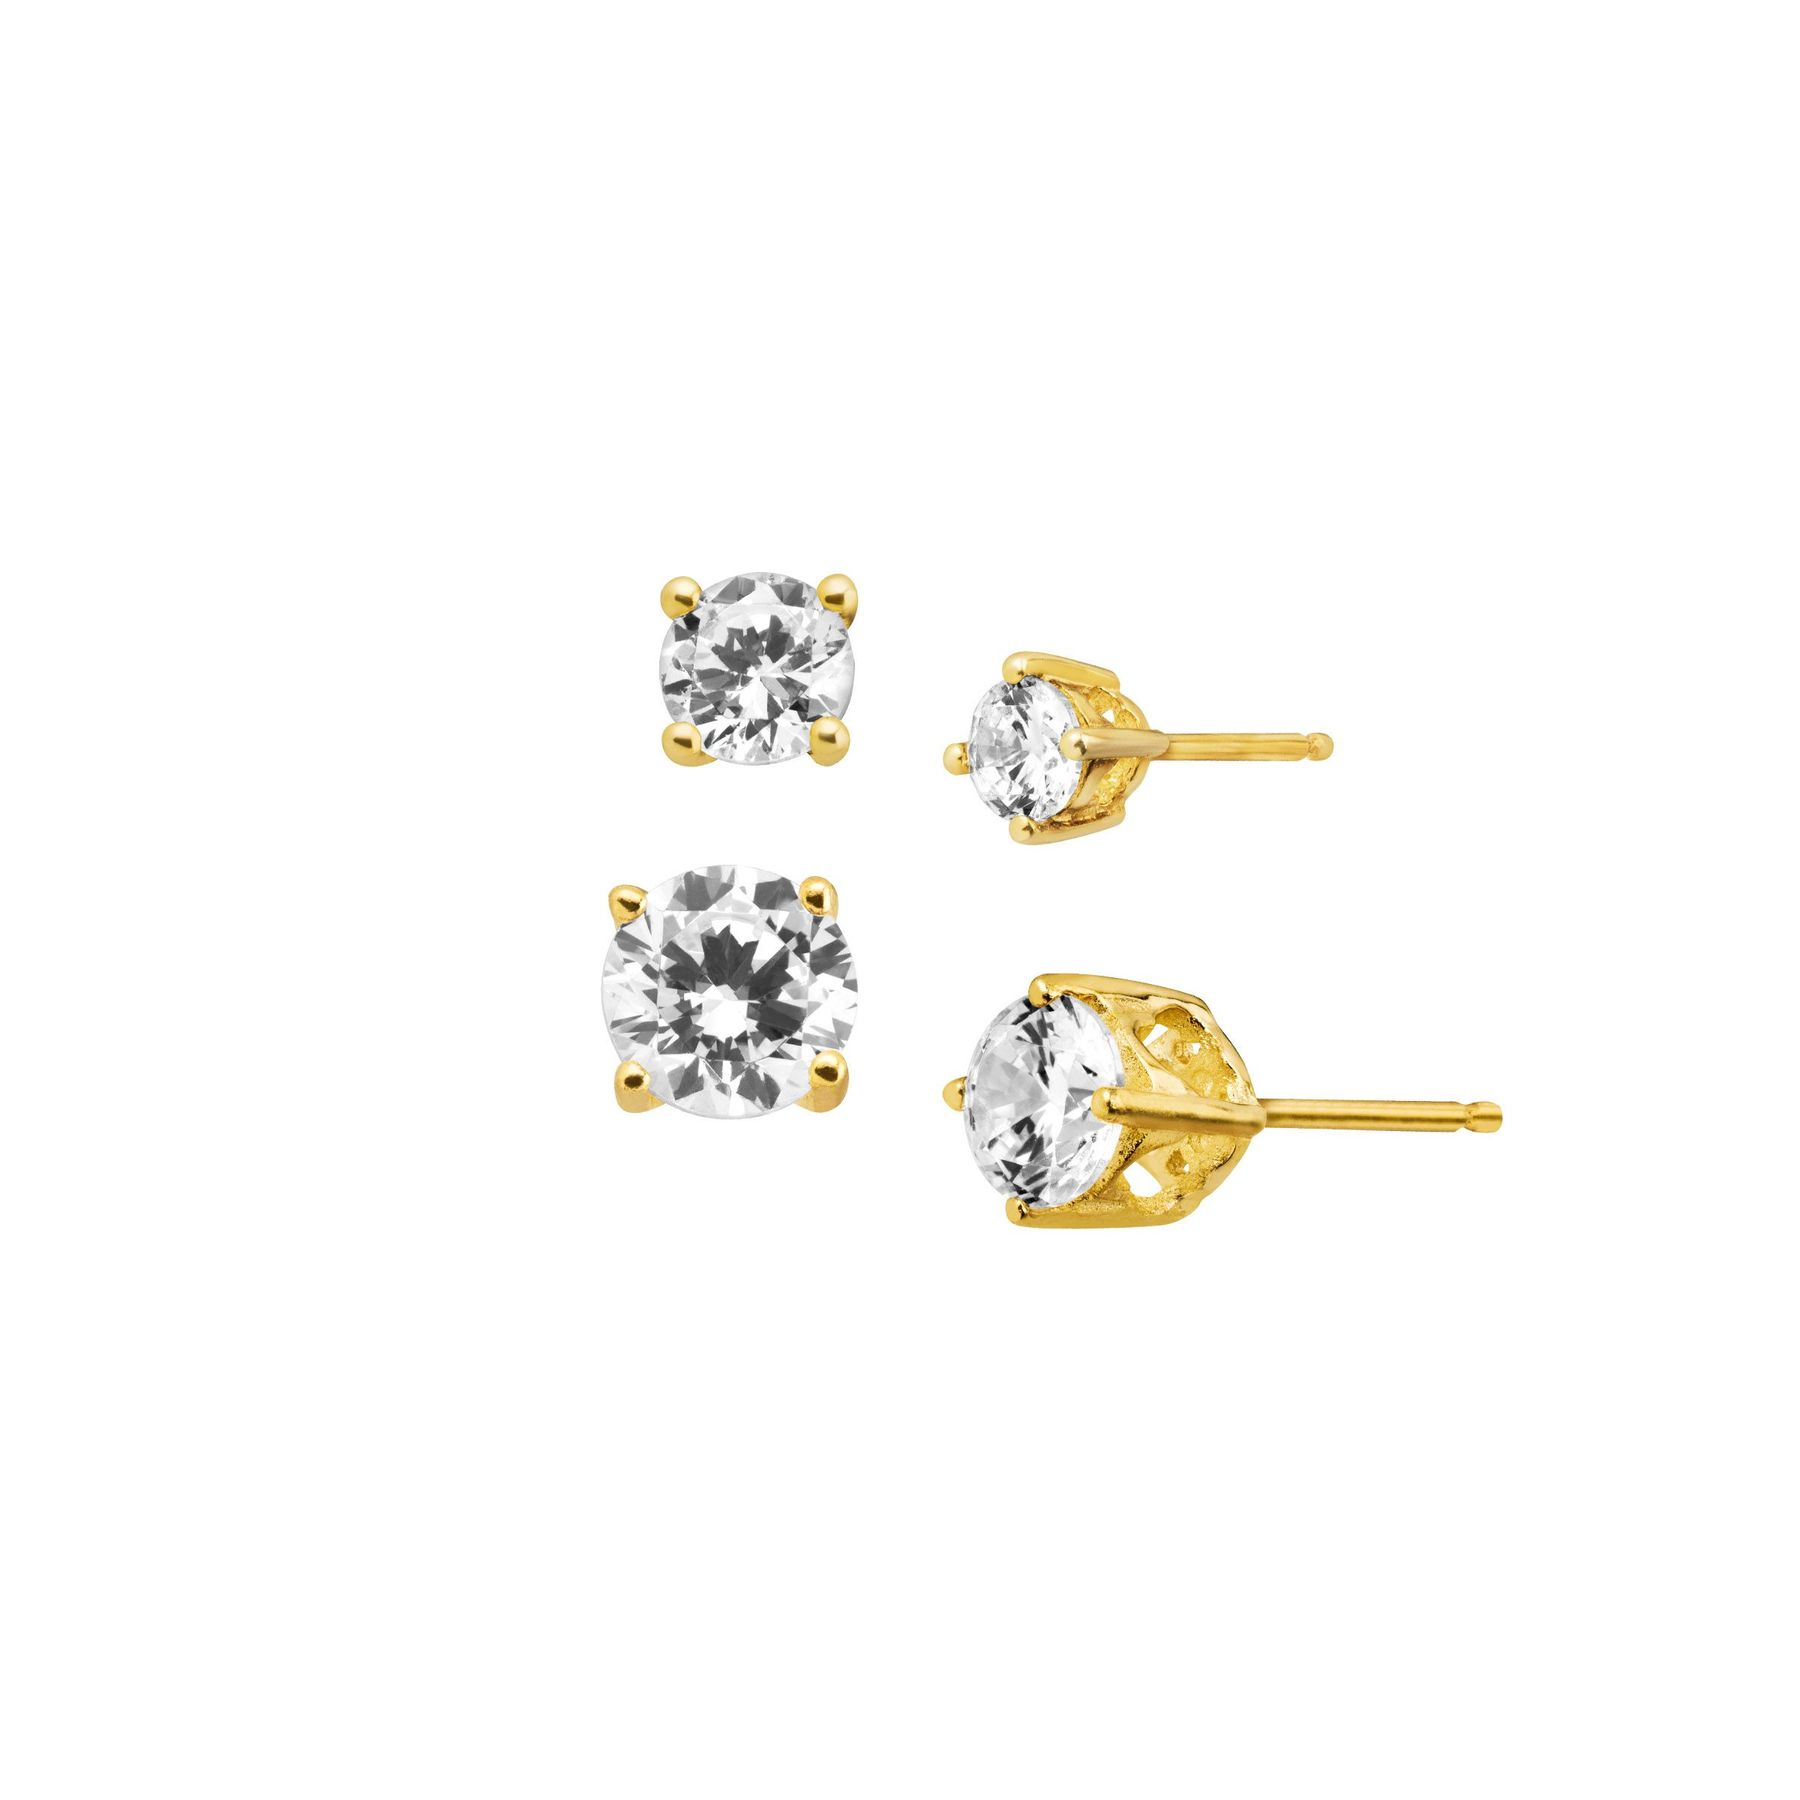 e85cf5f4def782 Set of Two Cubic Zirconia Stud Earrings in 18K Gold-Plated Sterling ...